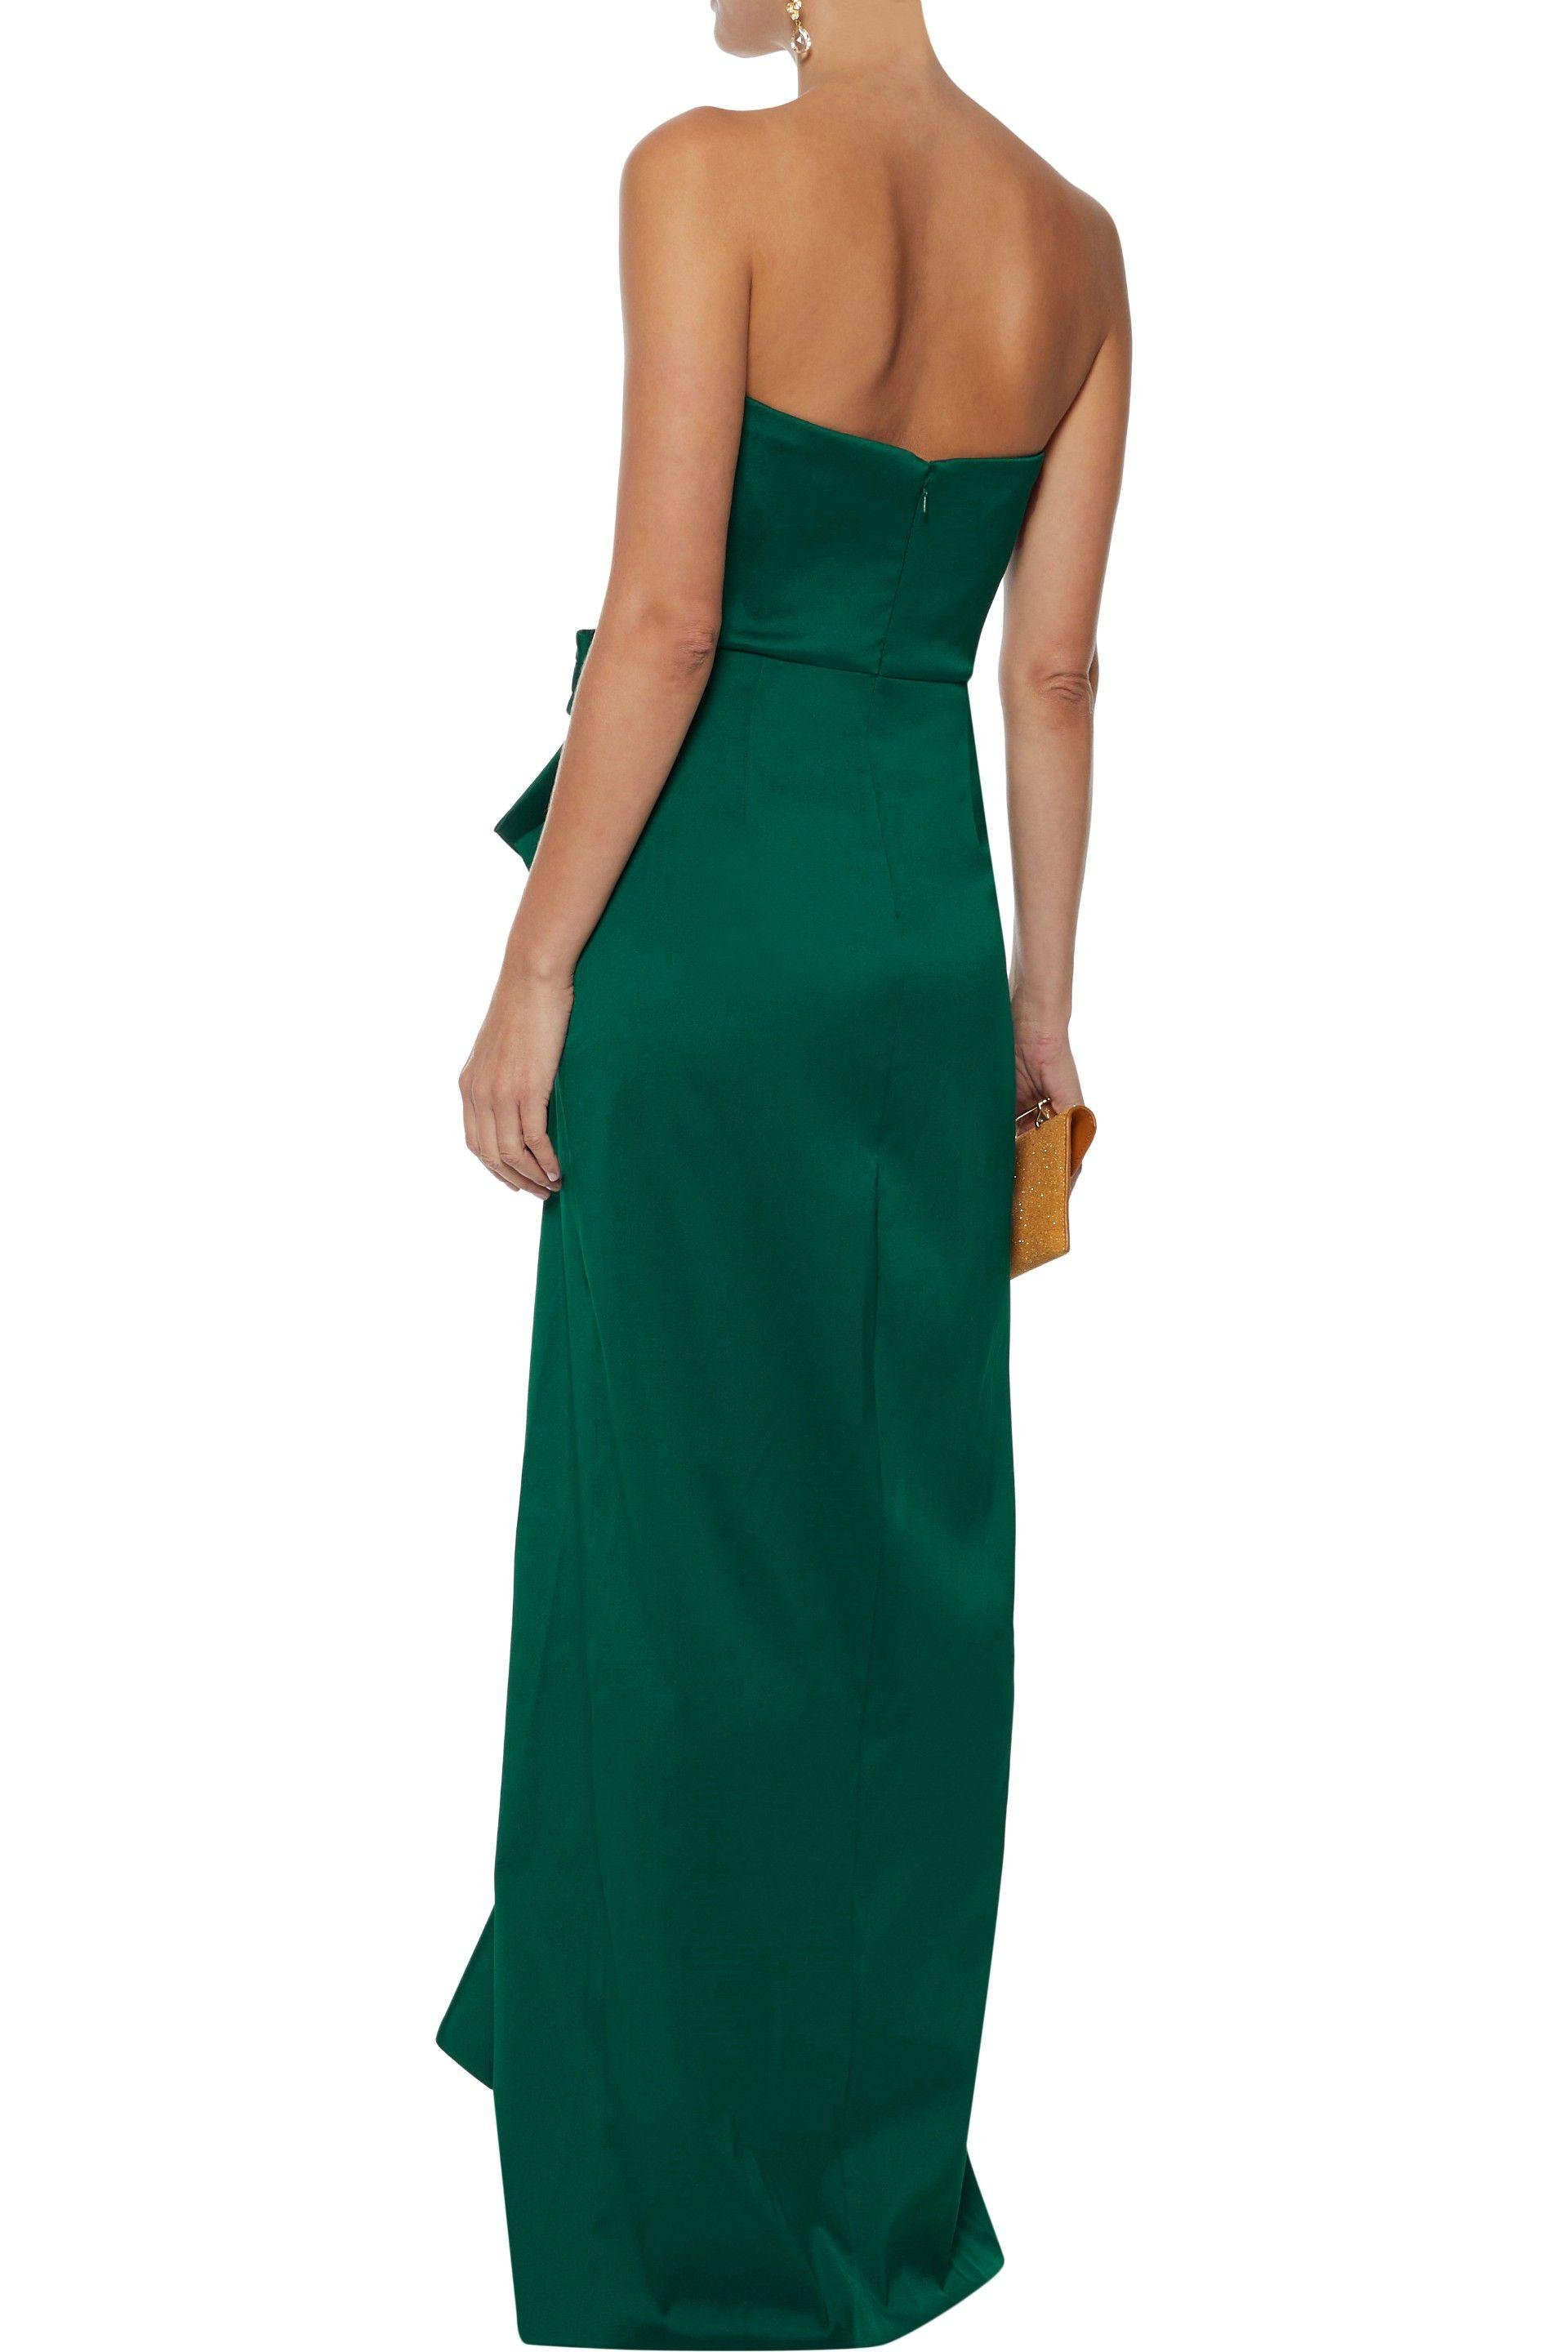 Badgley Mischka Synthetic Strapless Ruffled Satin-twill Gown Emerald in Green